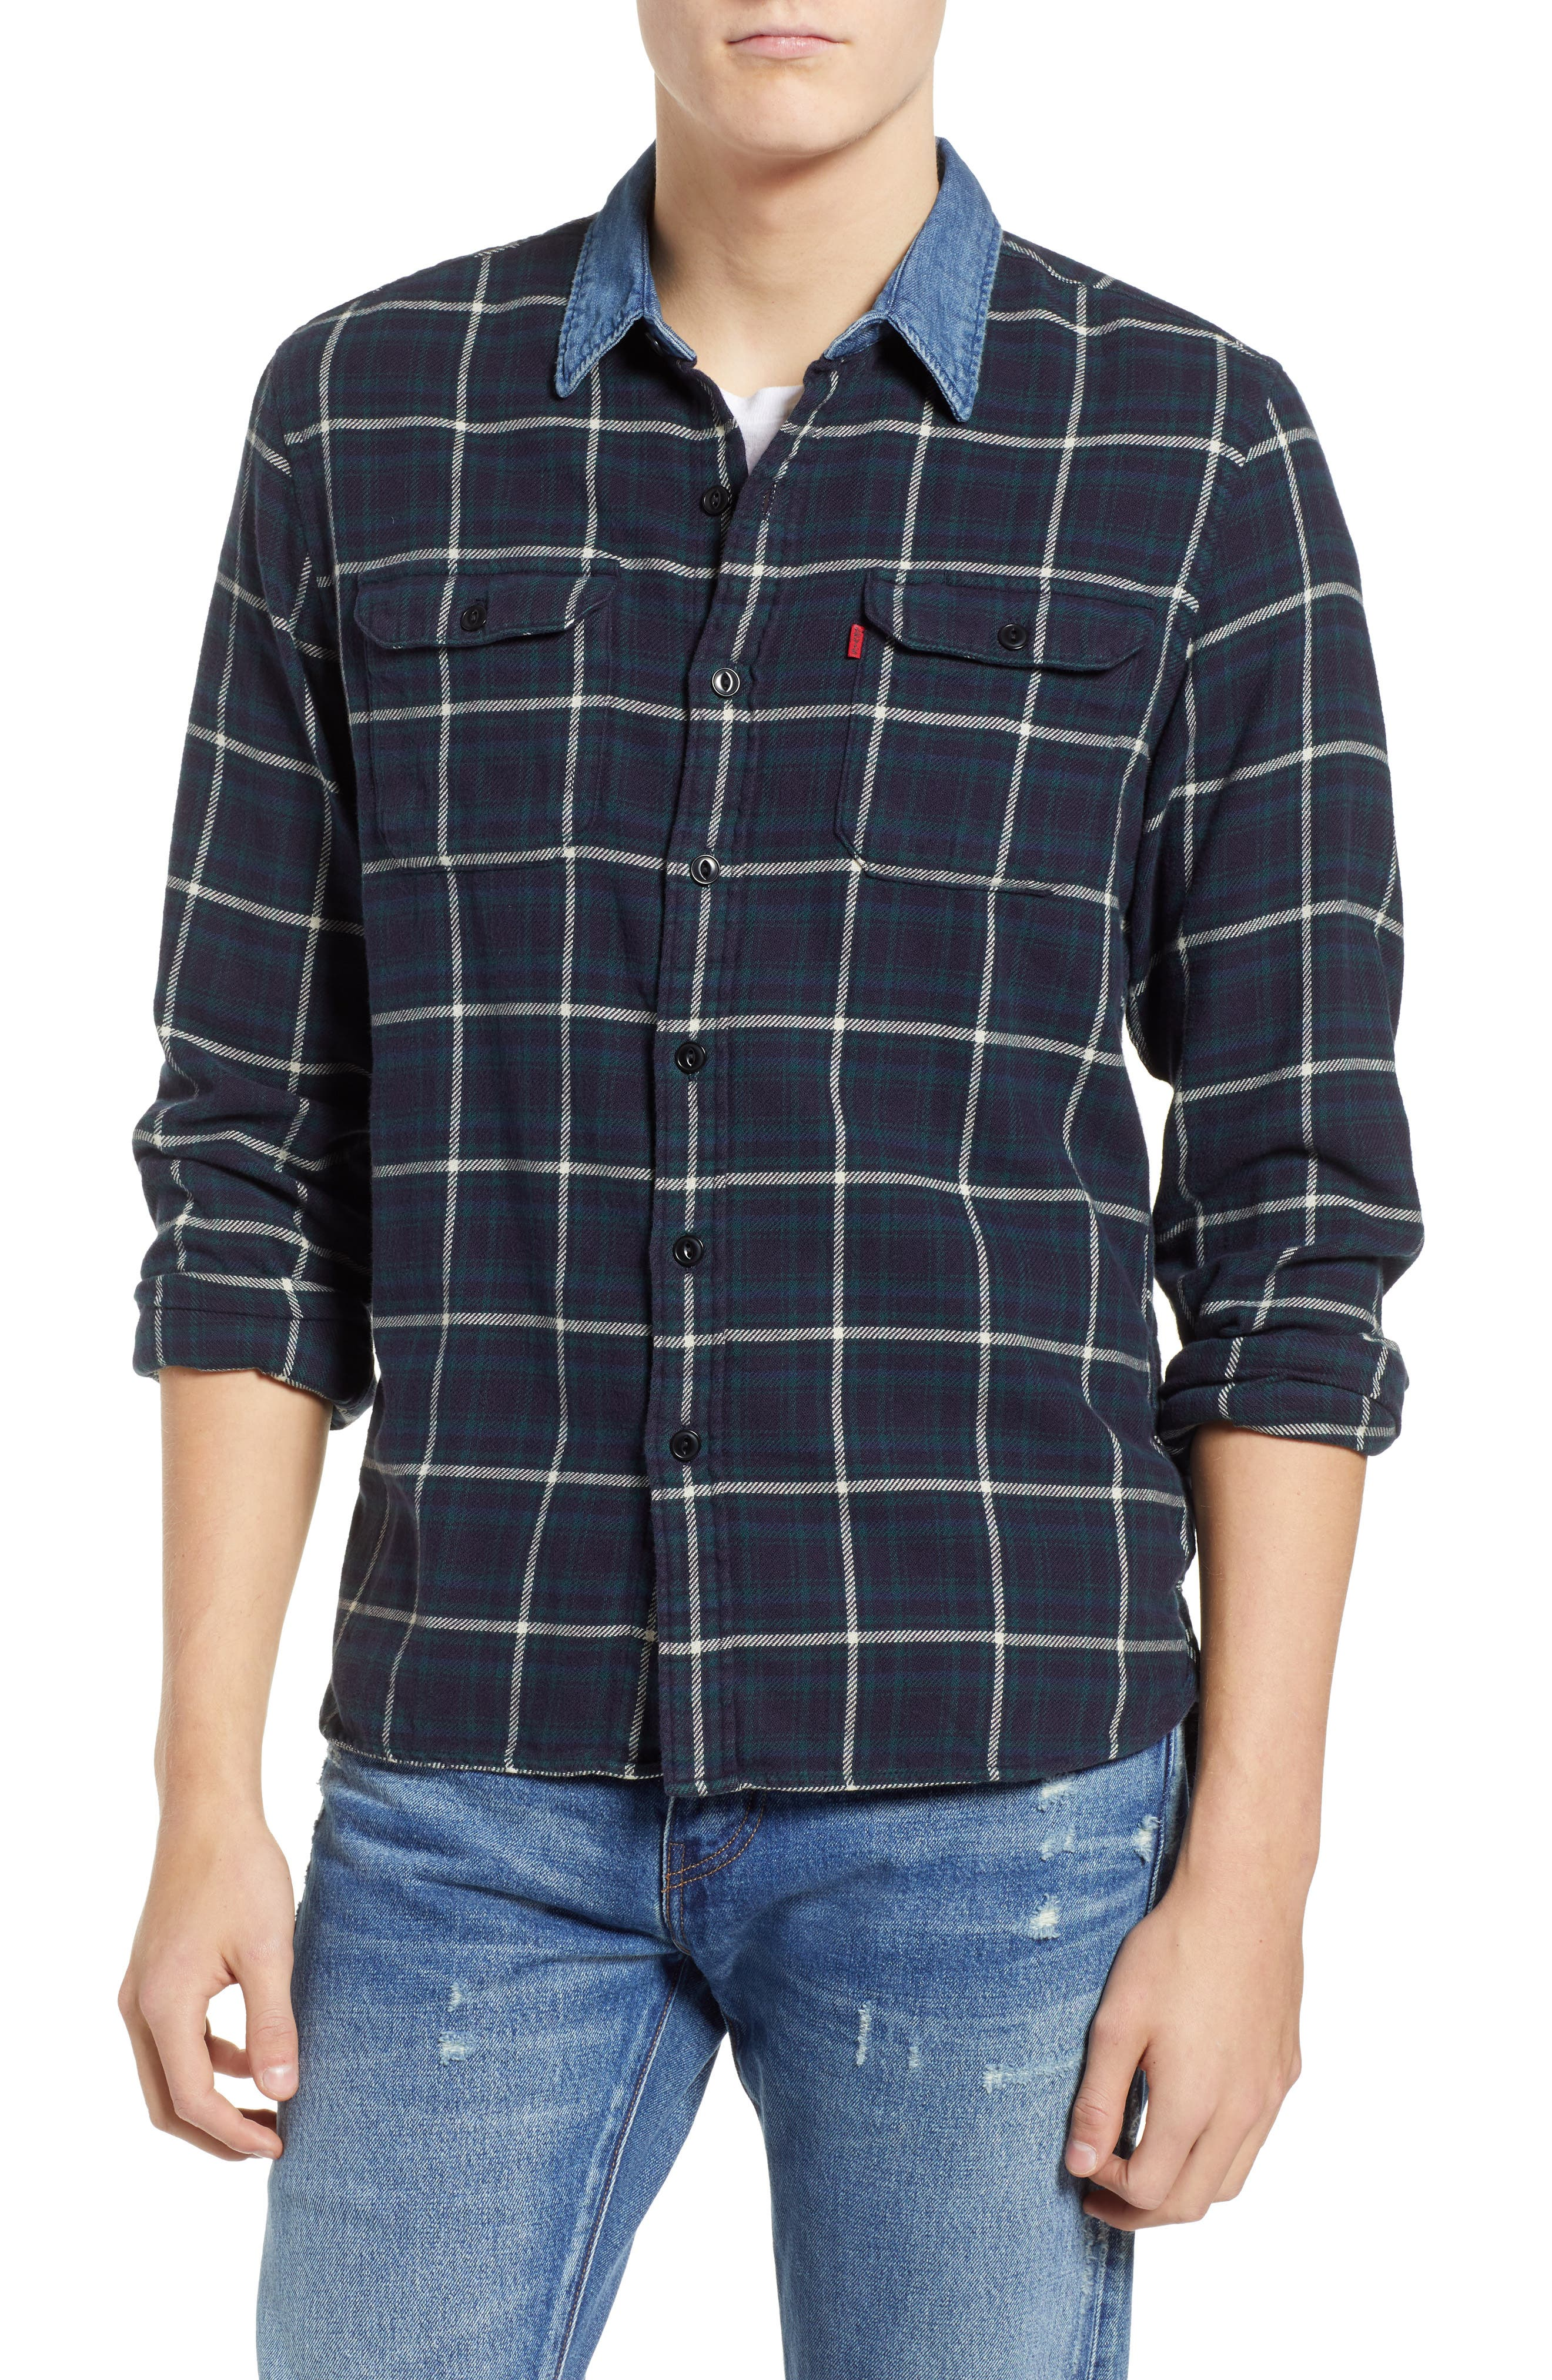 x Justin Timberlake Slim Fit Flannel Worker Shirt,                             Main thumbnail 1, color,                             HALLET NIGHT SKY